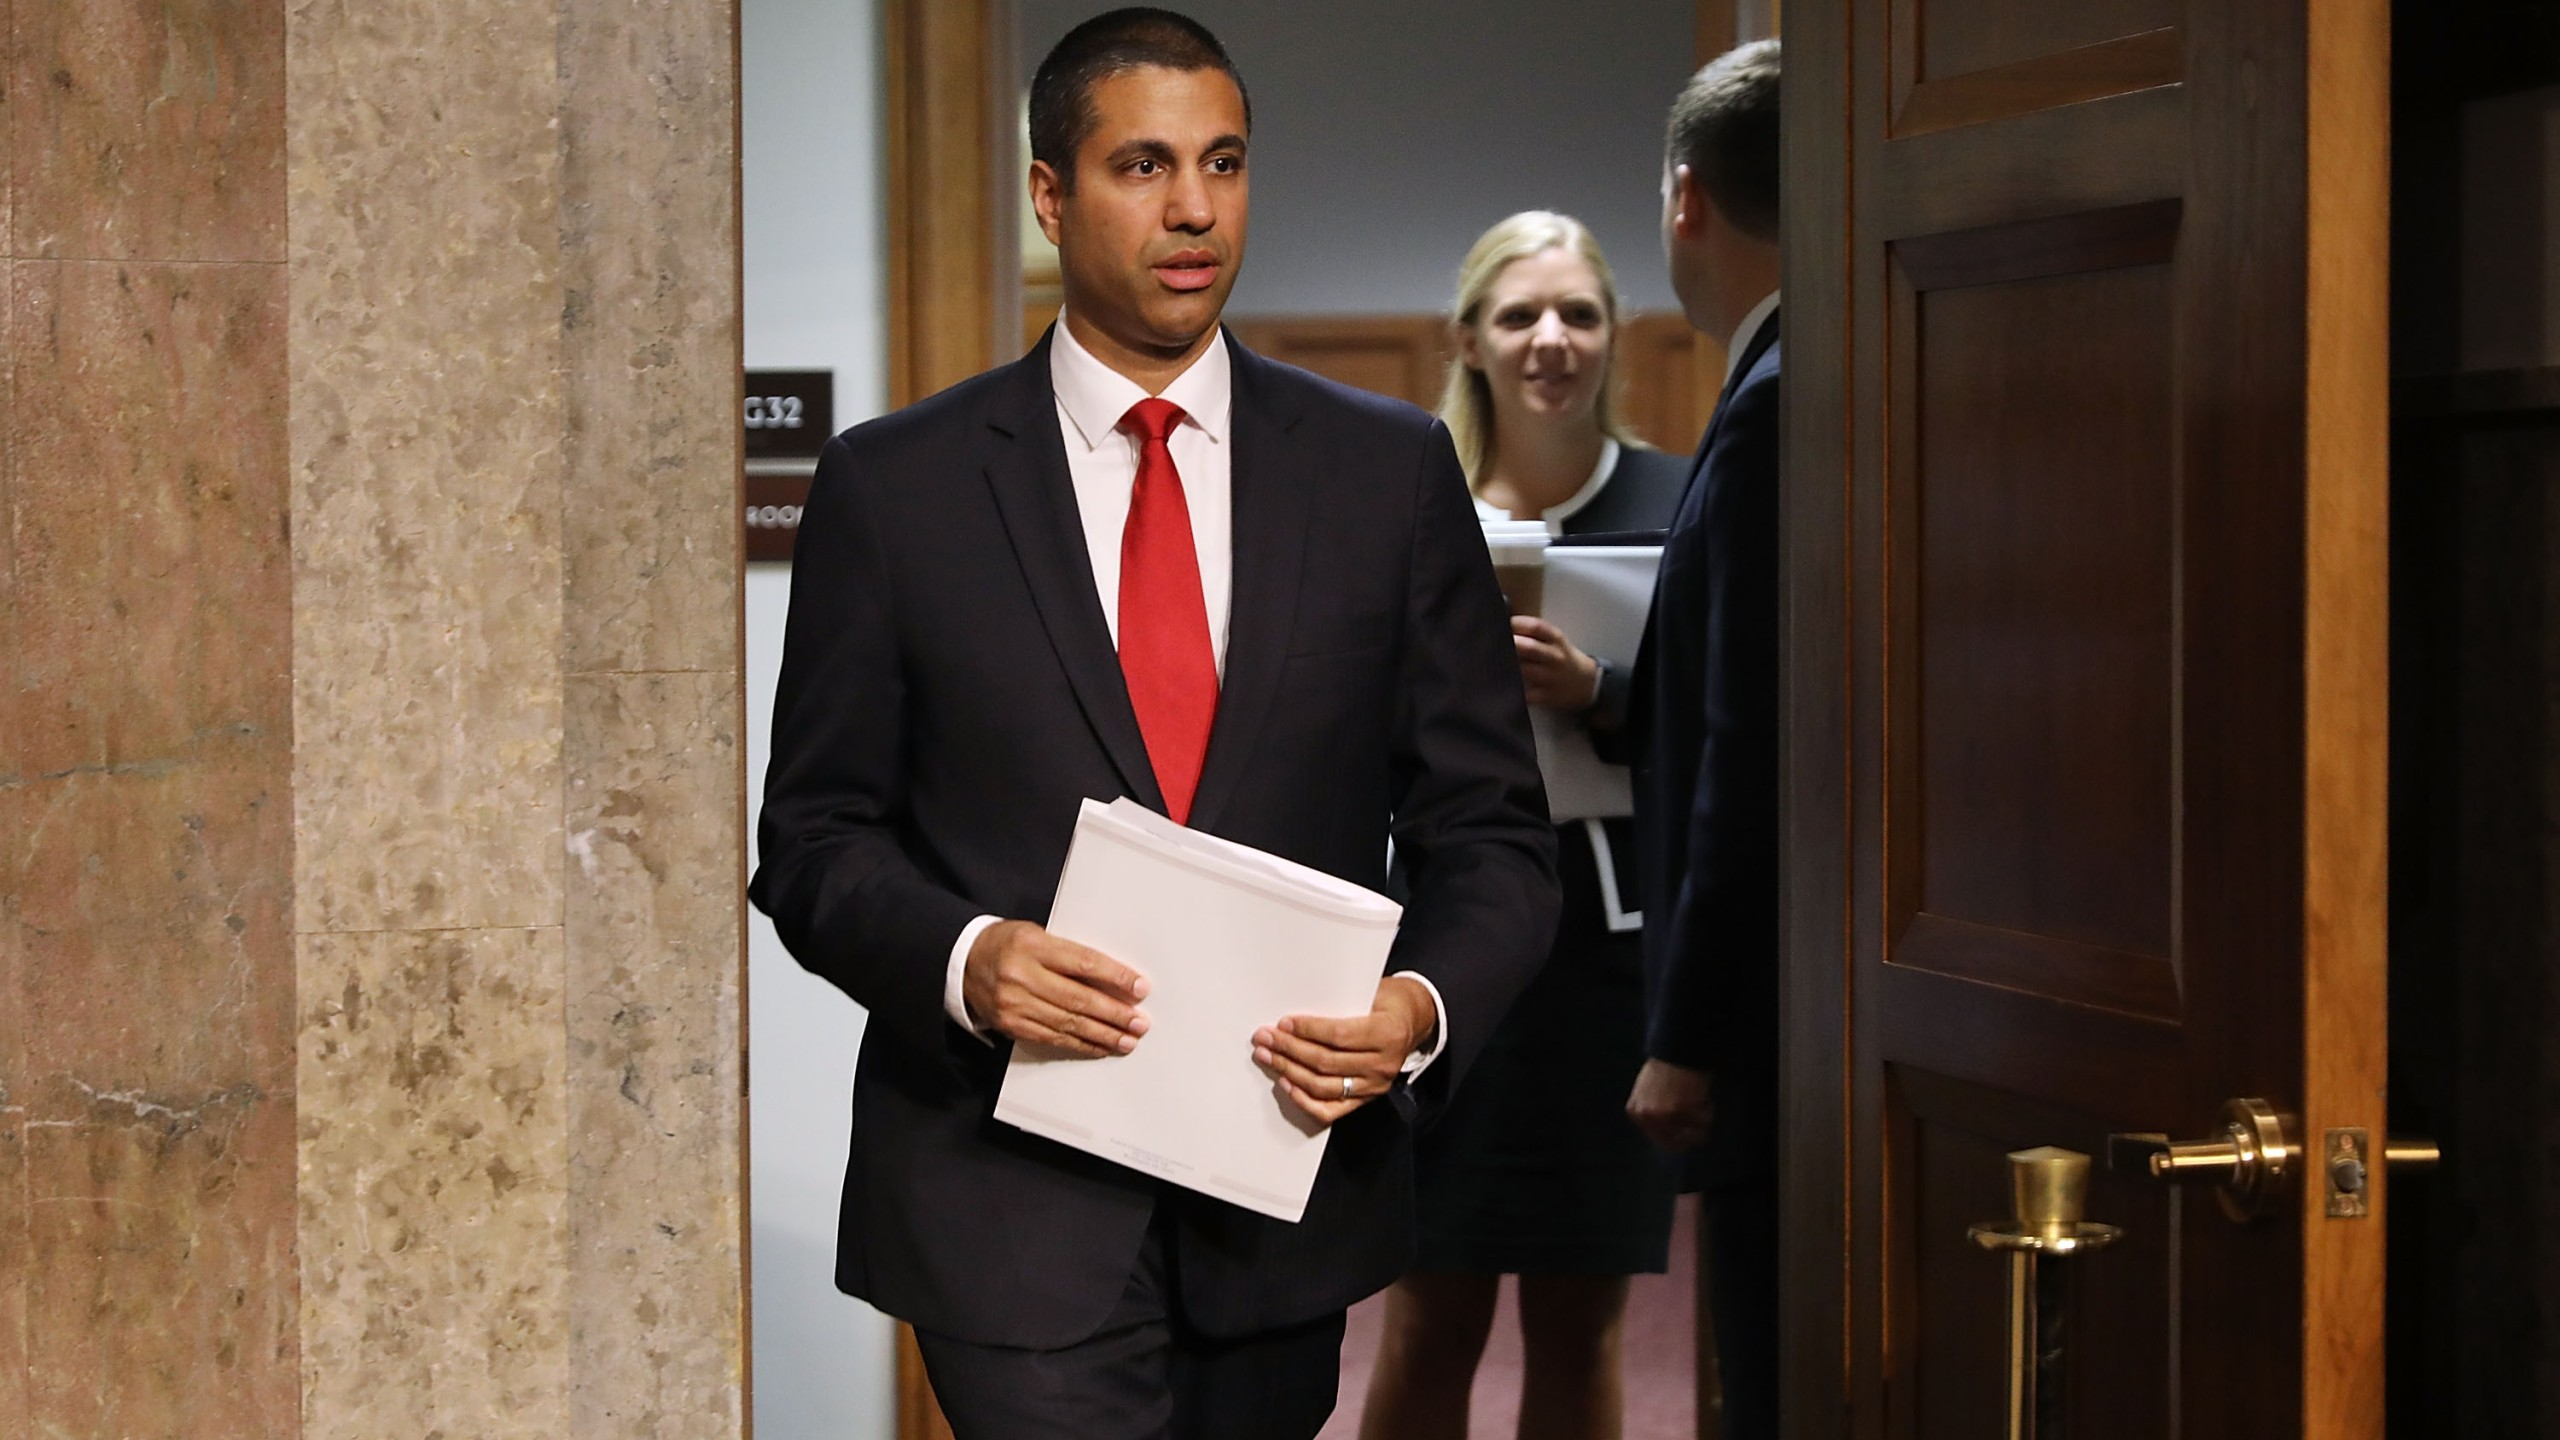 Federal Communications Commission Chairman Ajit Pai arrives for his confirmation hearing for a second term as chair of the commission before the Senate Commerce, Science and Transportation Committee in the Dirksen Senate Office Building on Capitol Hill July 19, 2017 in Washington, DC. (Credit: Chip Somodevilla/Getty Images)